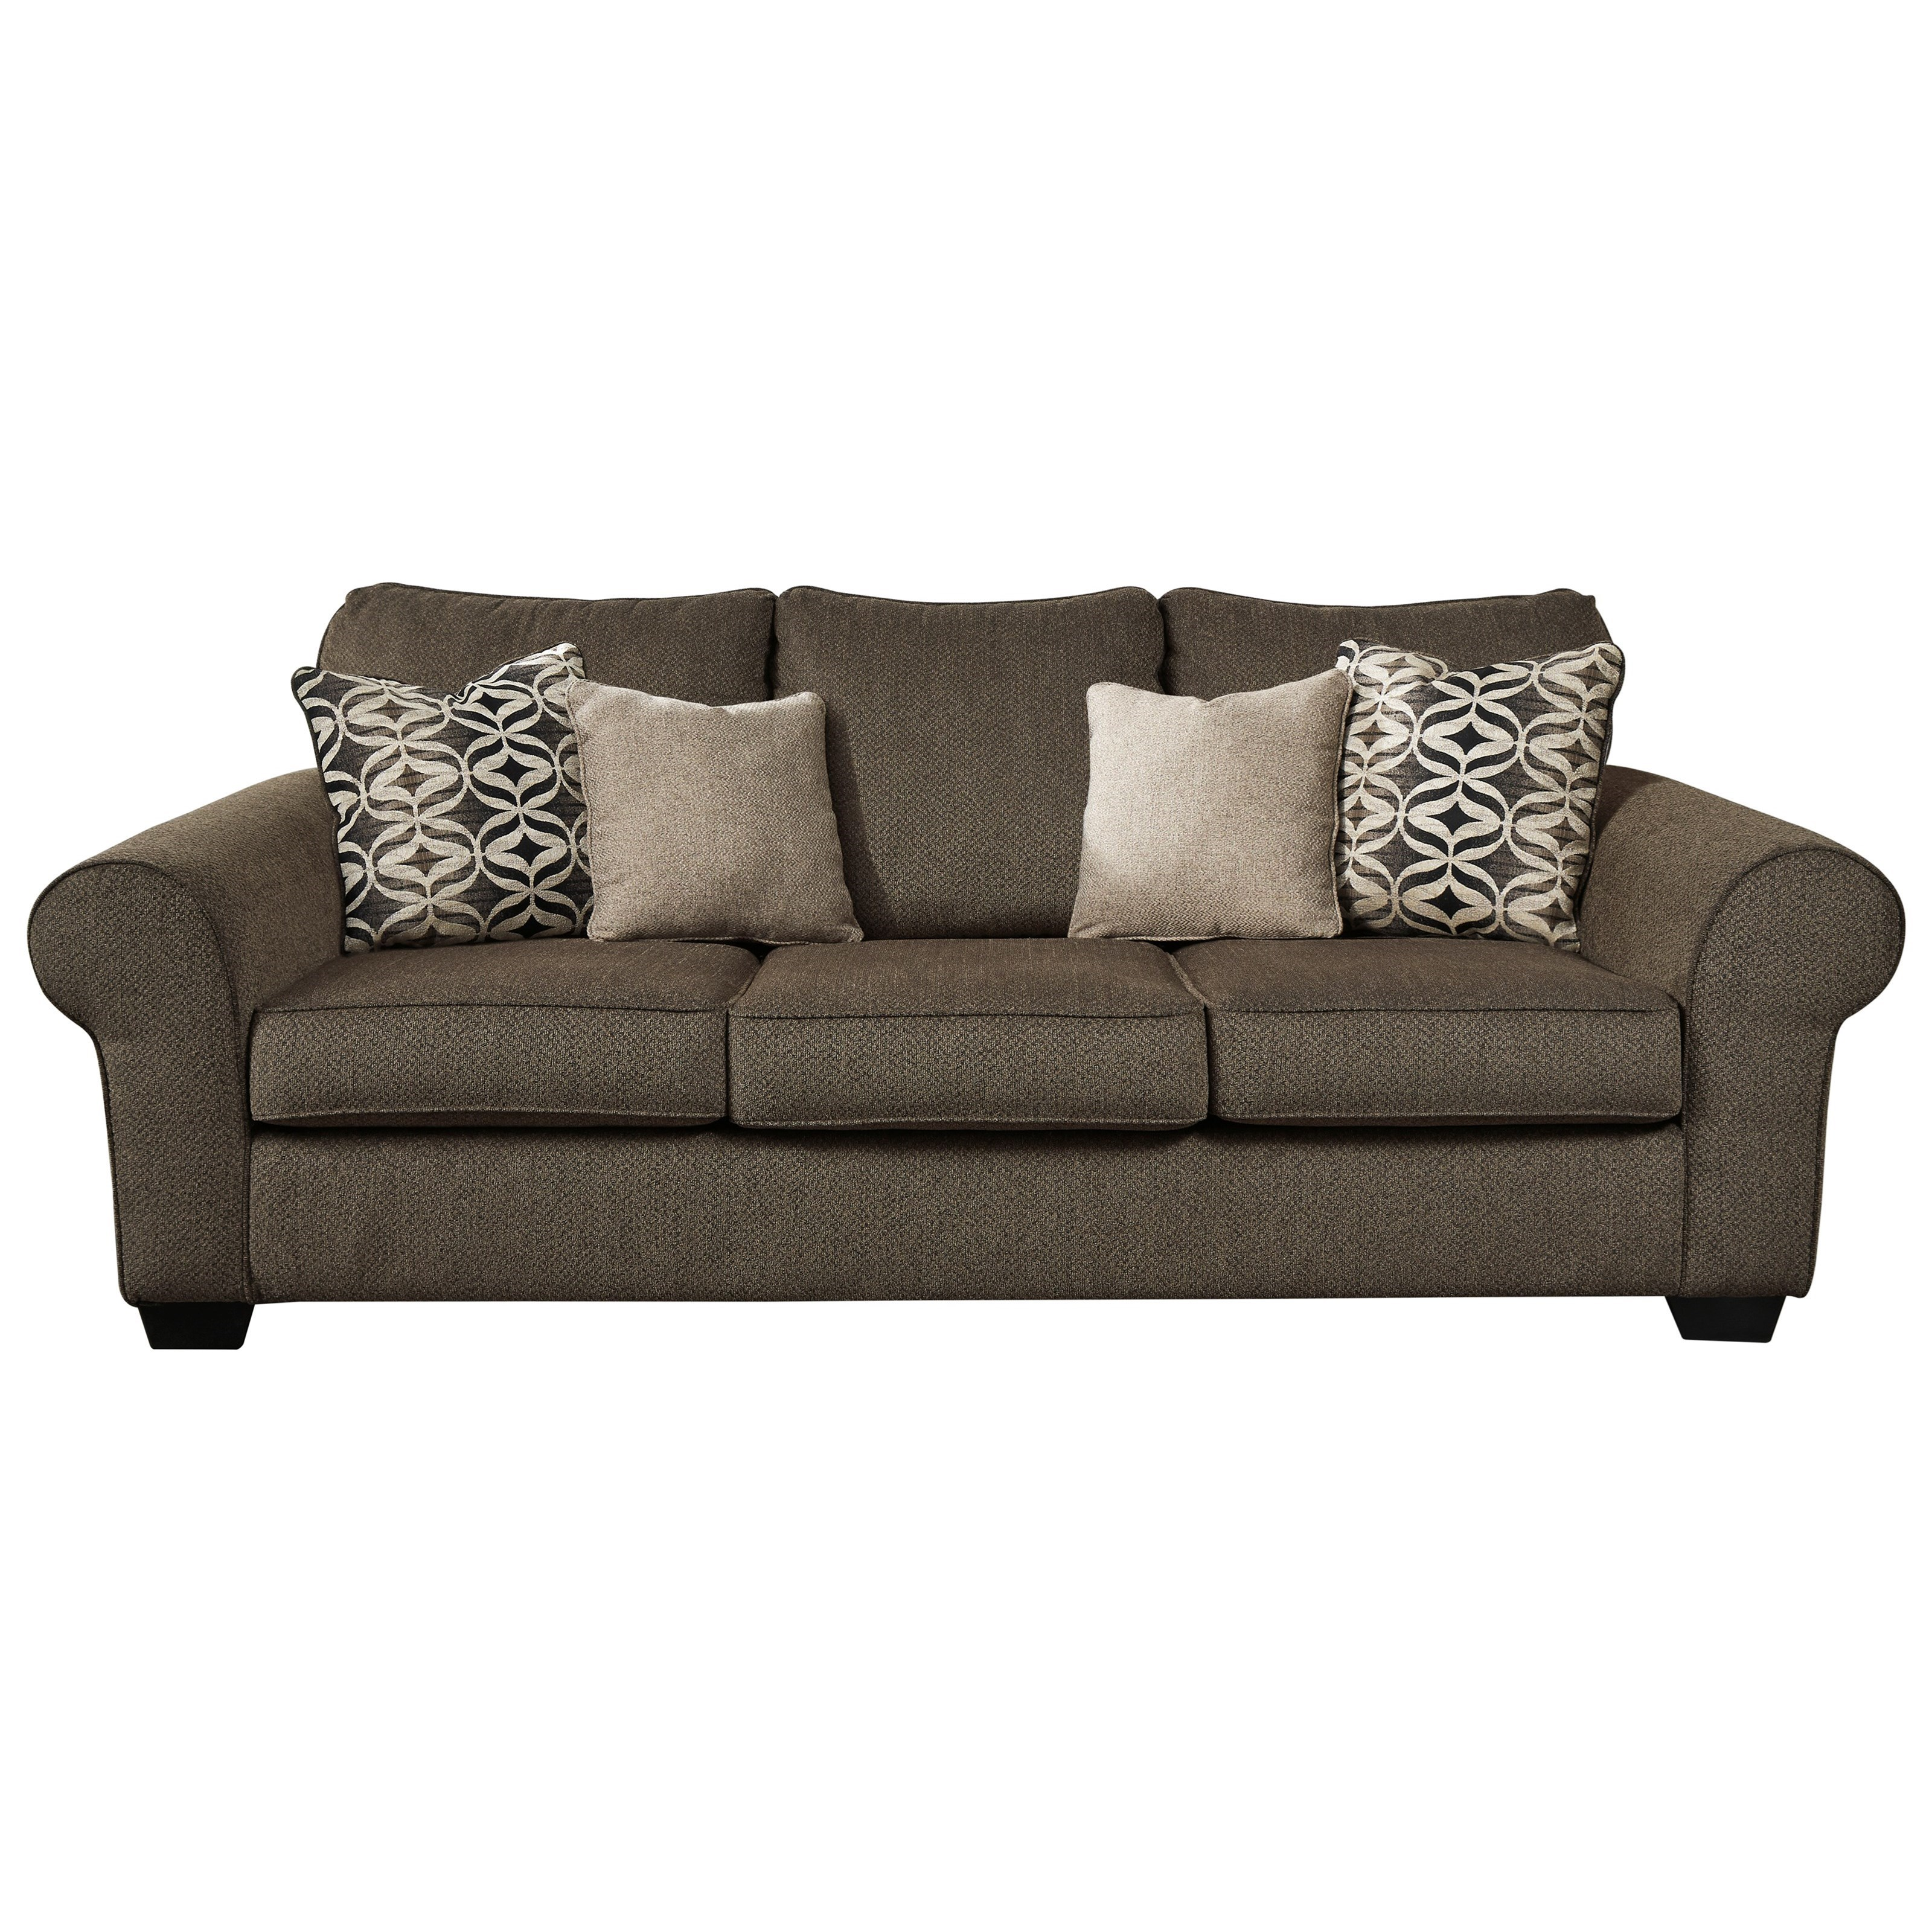 Nesso Queen Sofa Sleeper by Benchcraft at Walker's Furniture